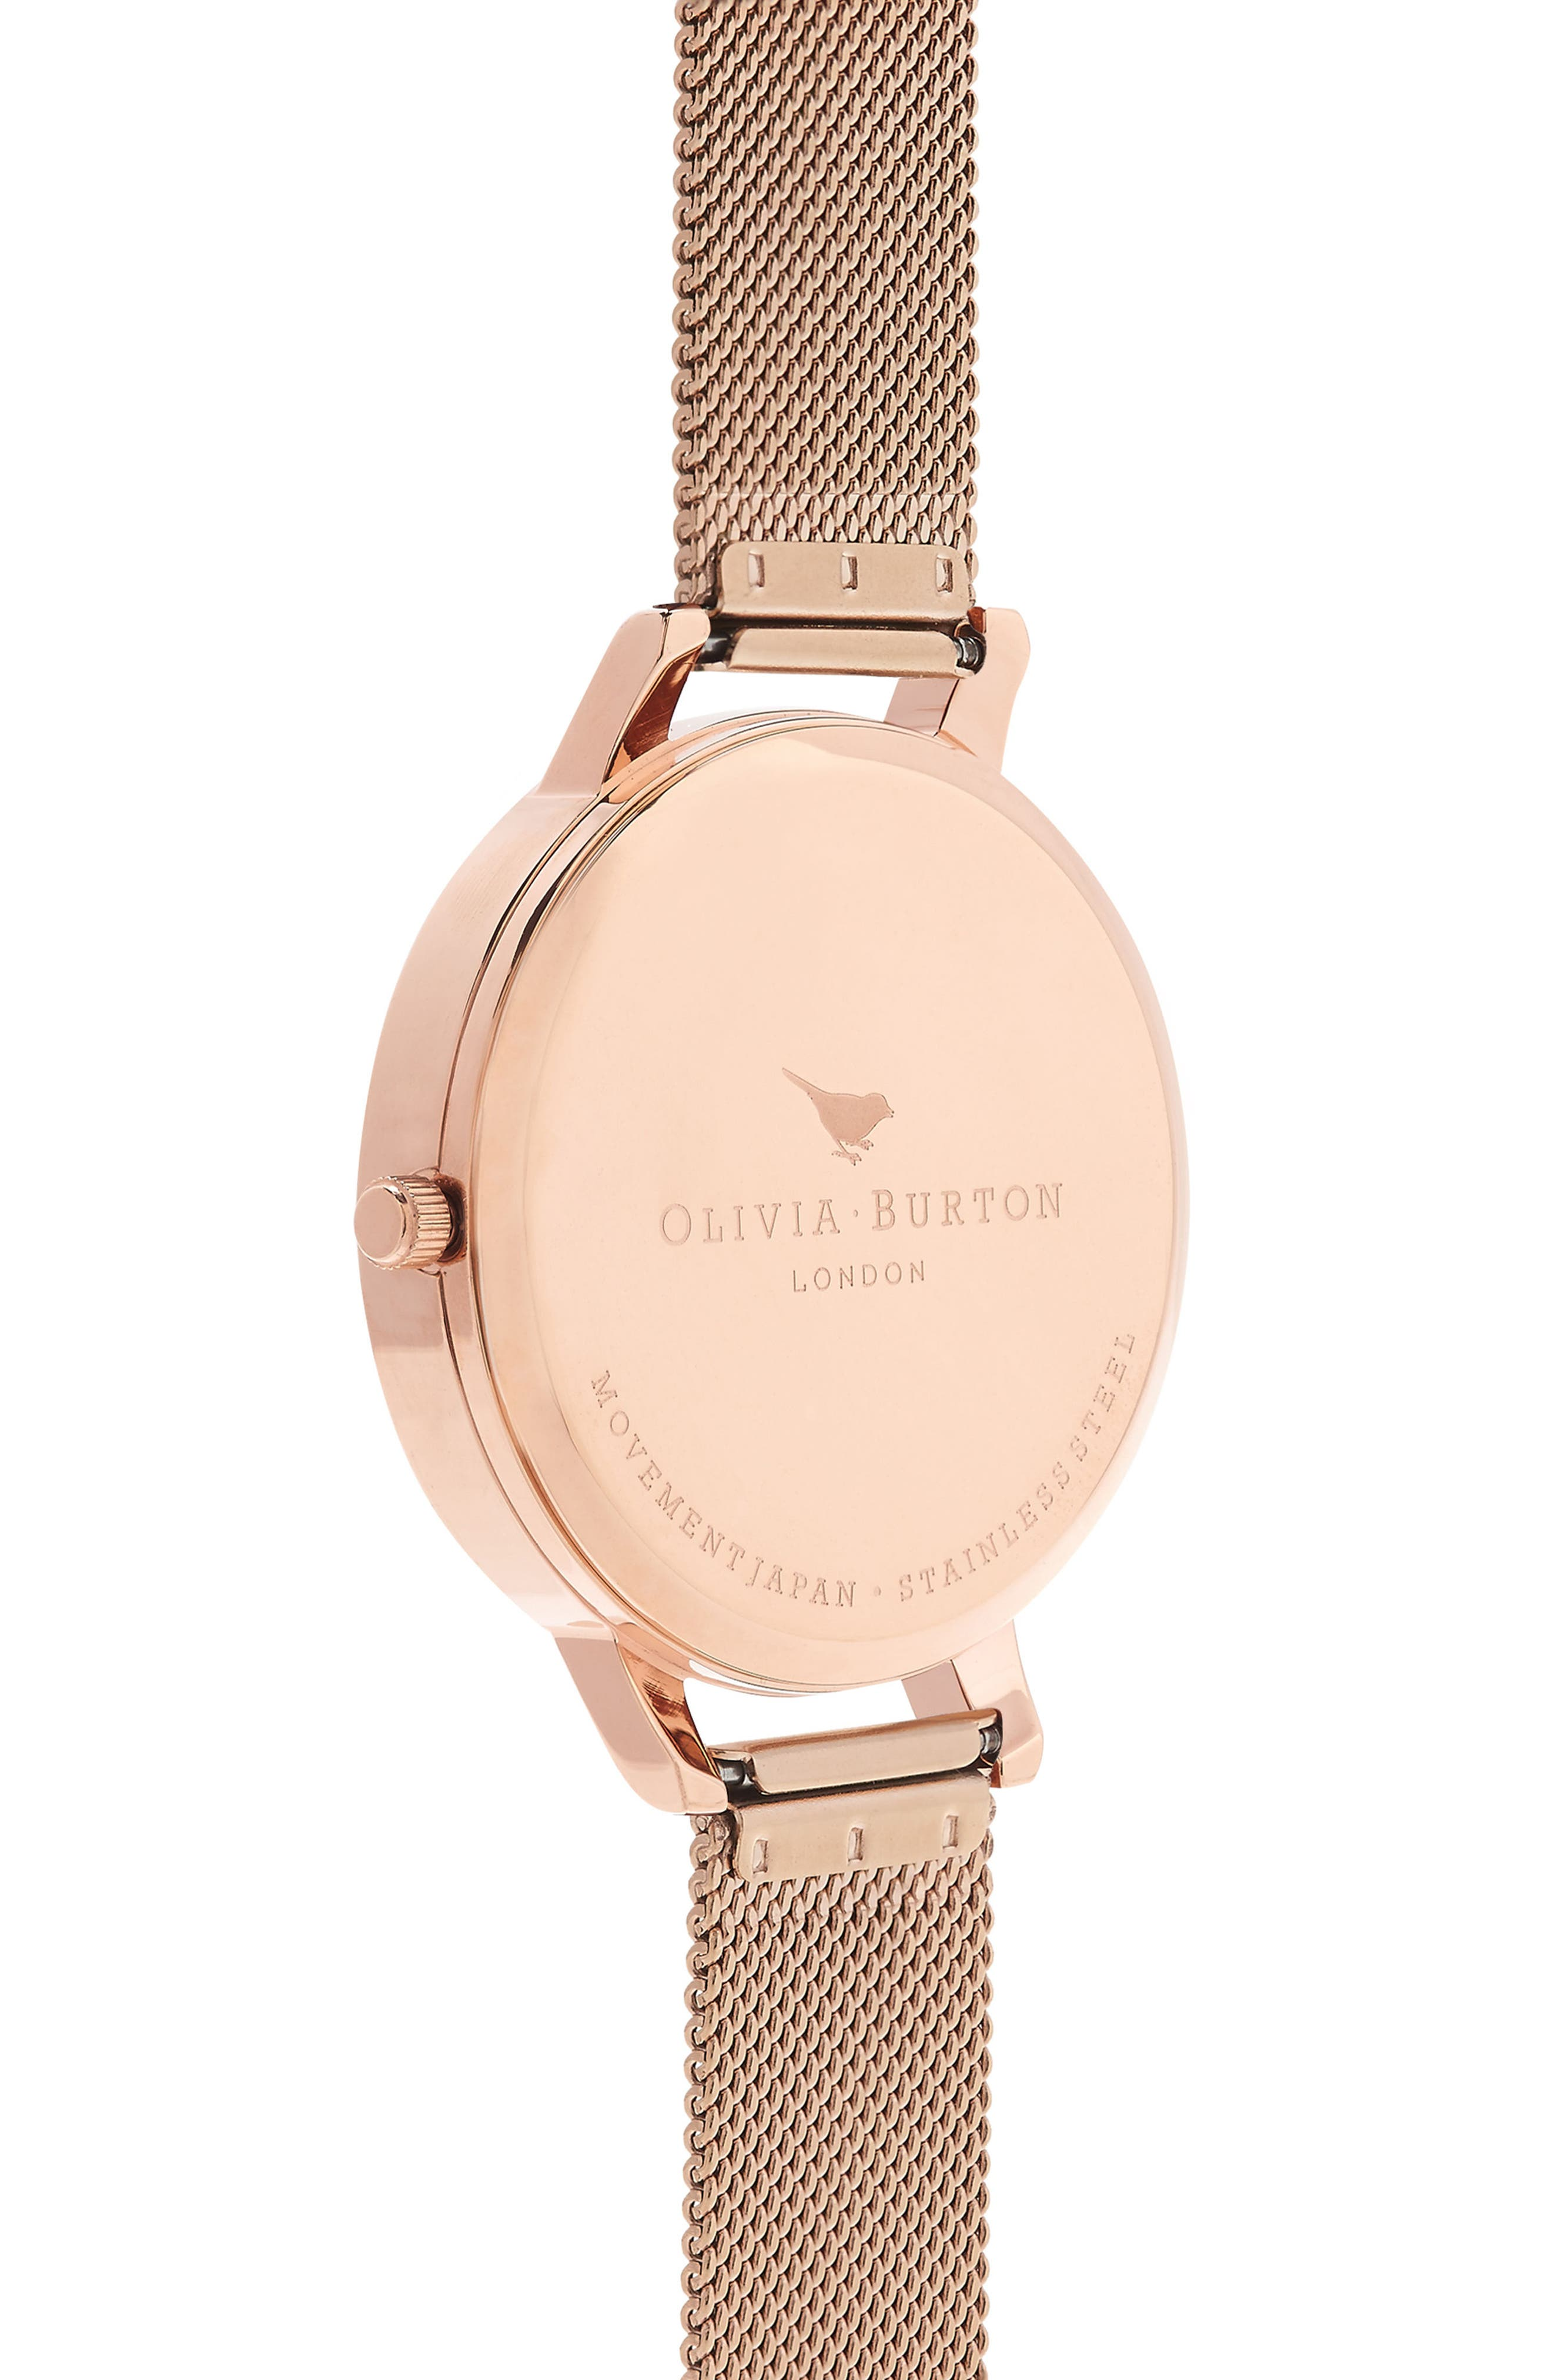 Lace Detail Mesh Strap Watch, 38mm,                             Alternate thumbnail 2, color,                             Rose Gold/ Grey/ Rose Gold